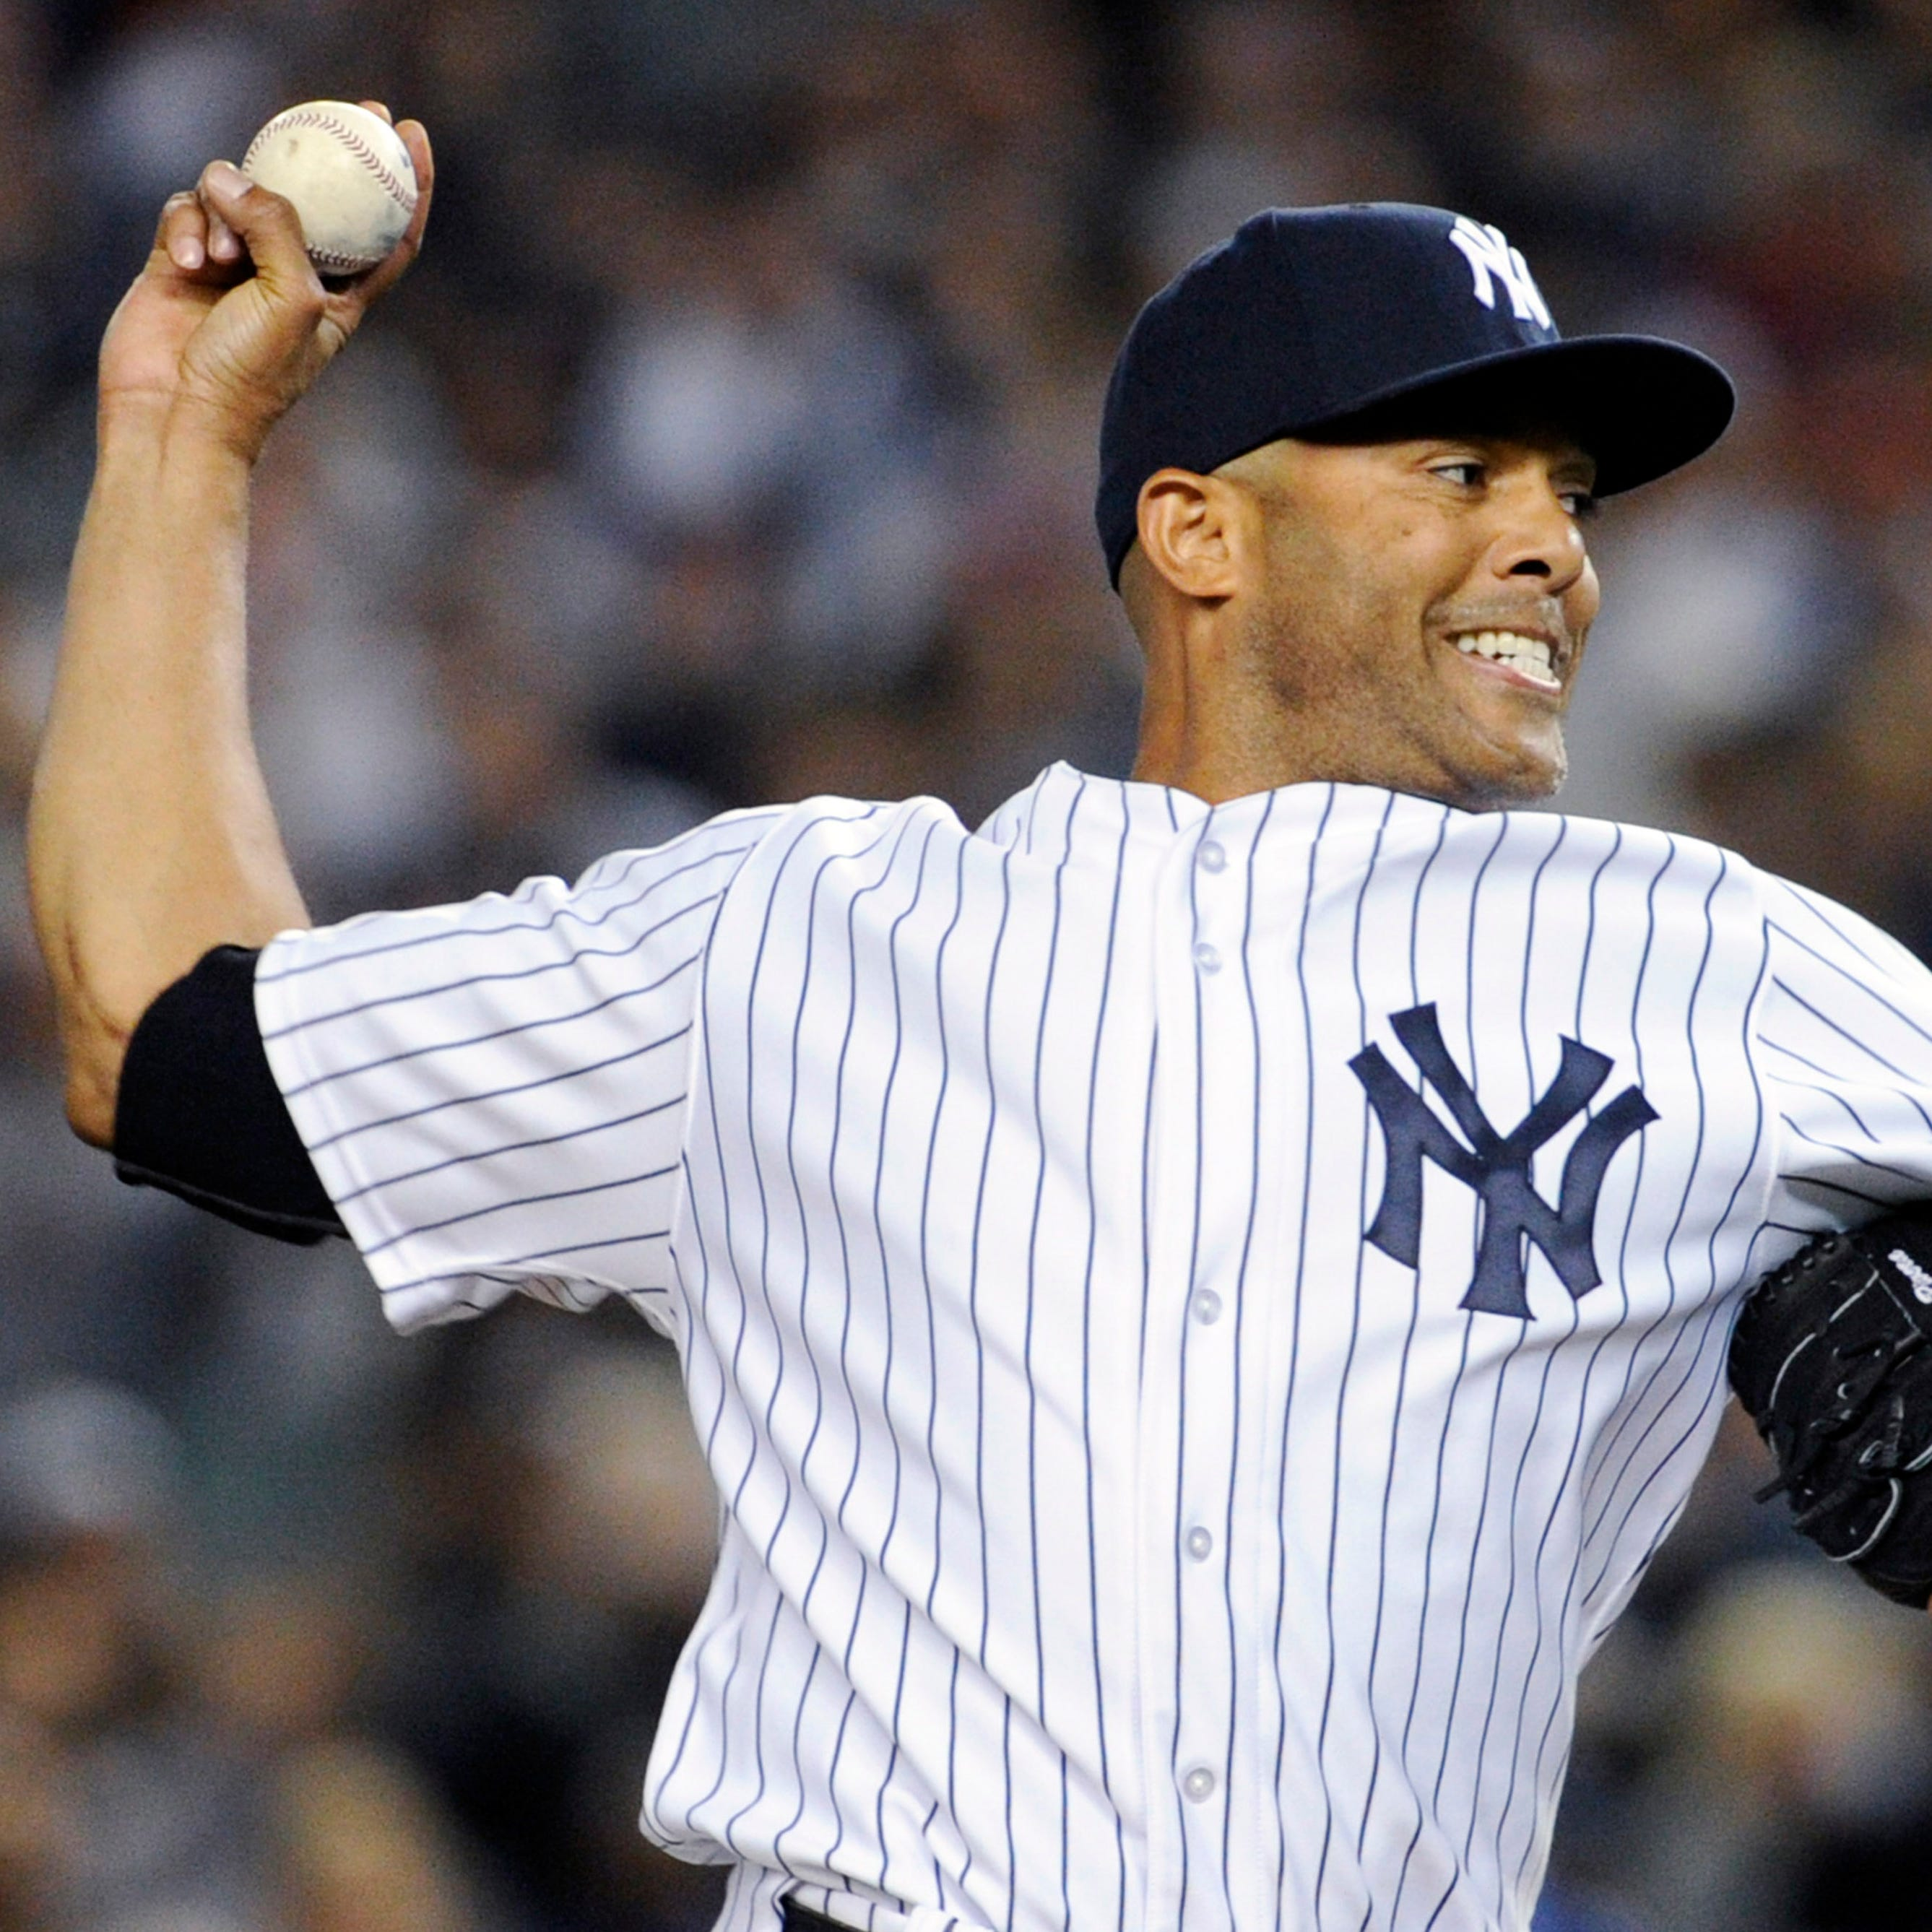 Mariano Rivera baseball's first unanimous Hall of Fame selection; Roy Halladay, Edgar Martinez and Mike Mussina also elected